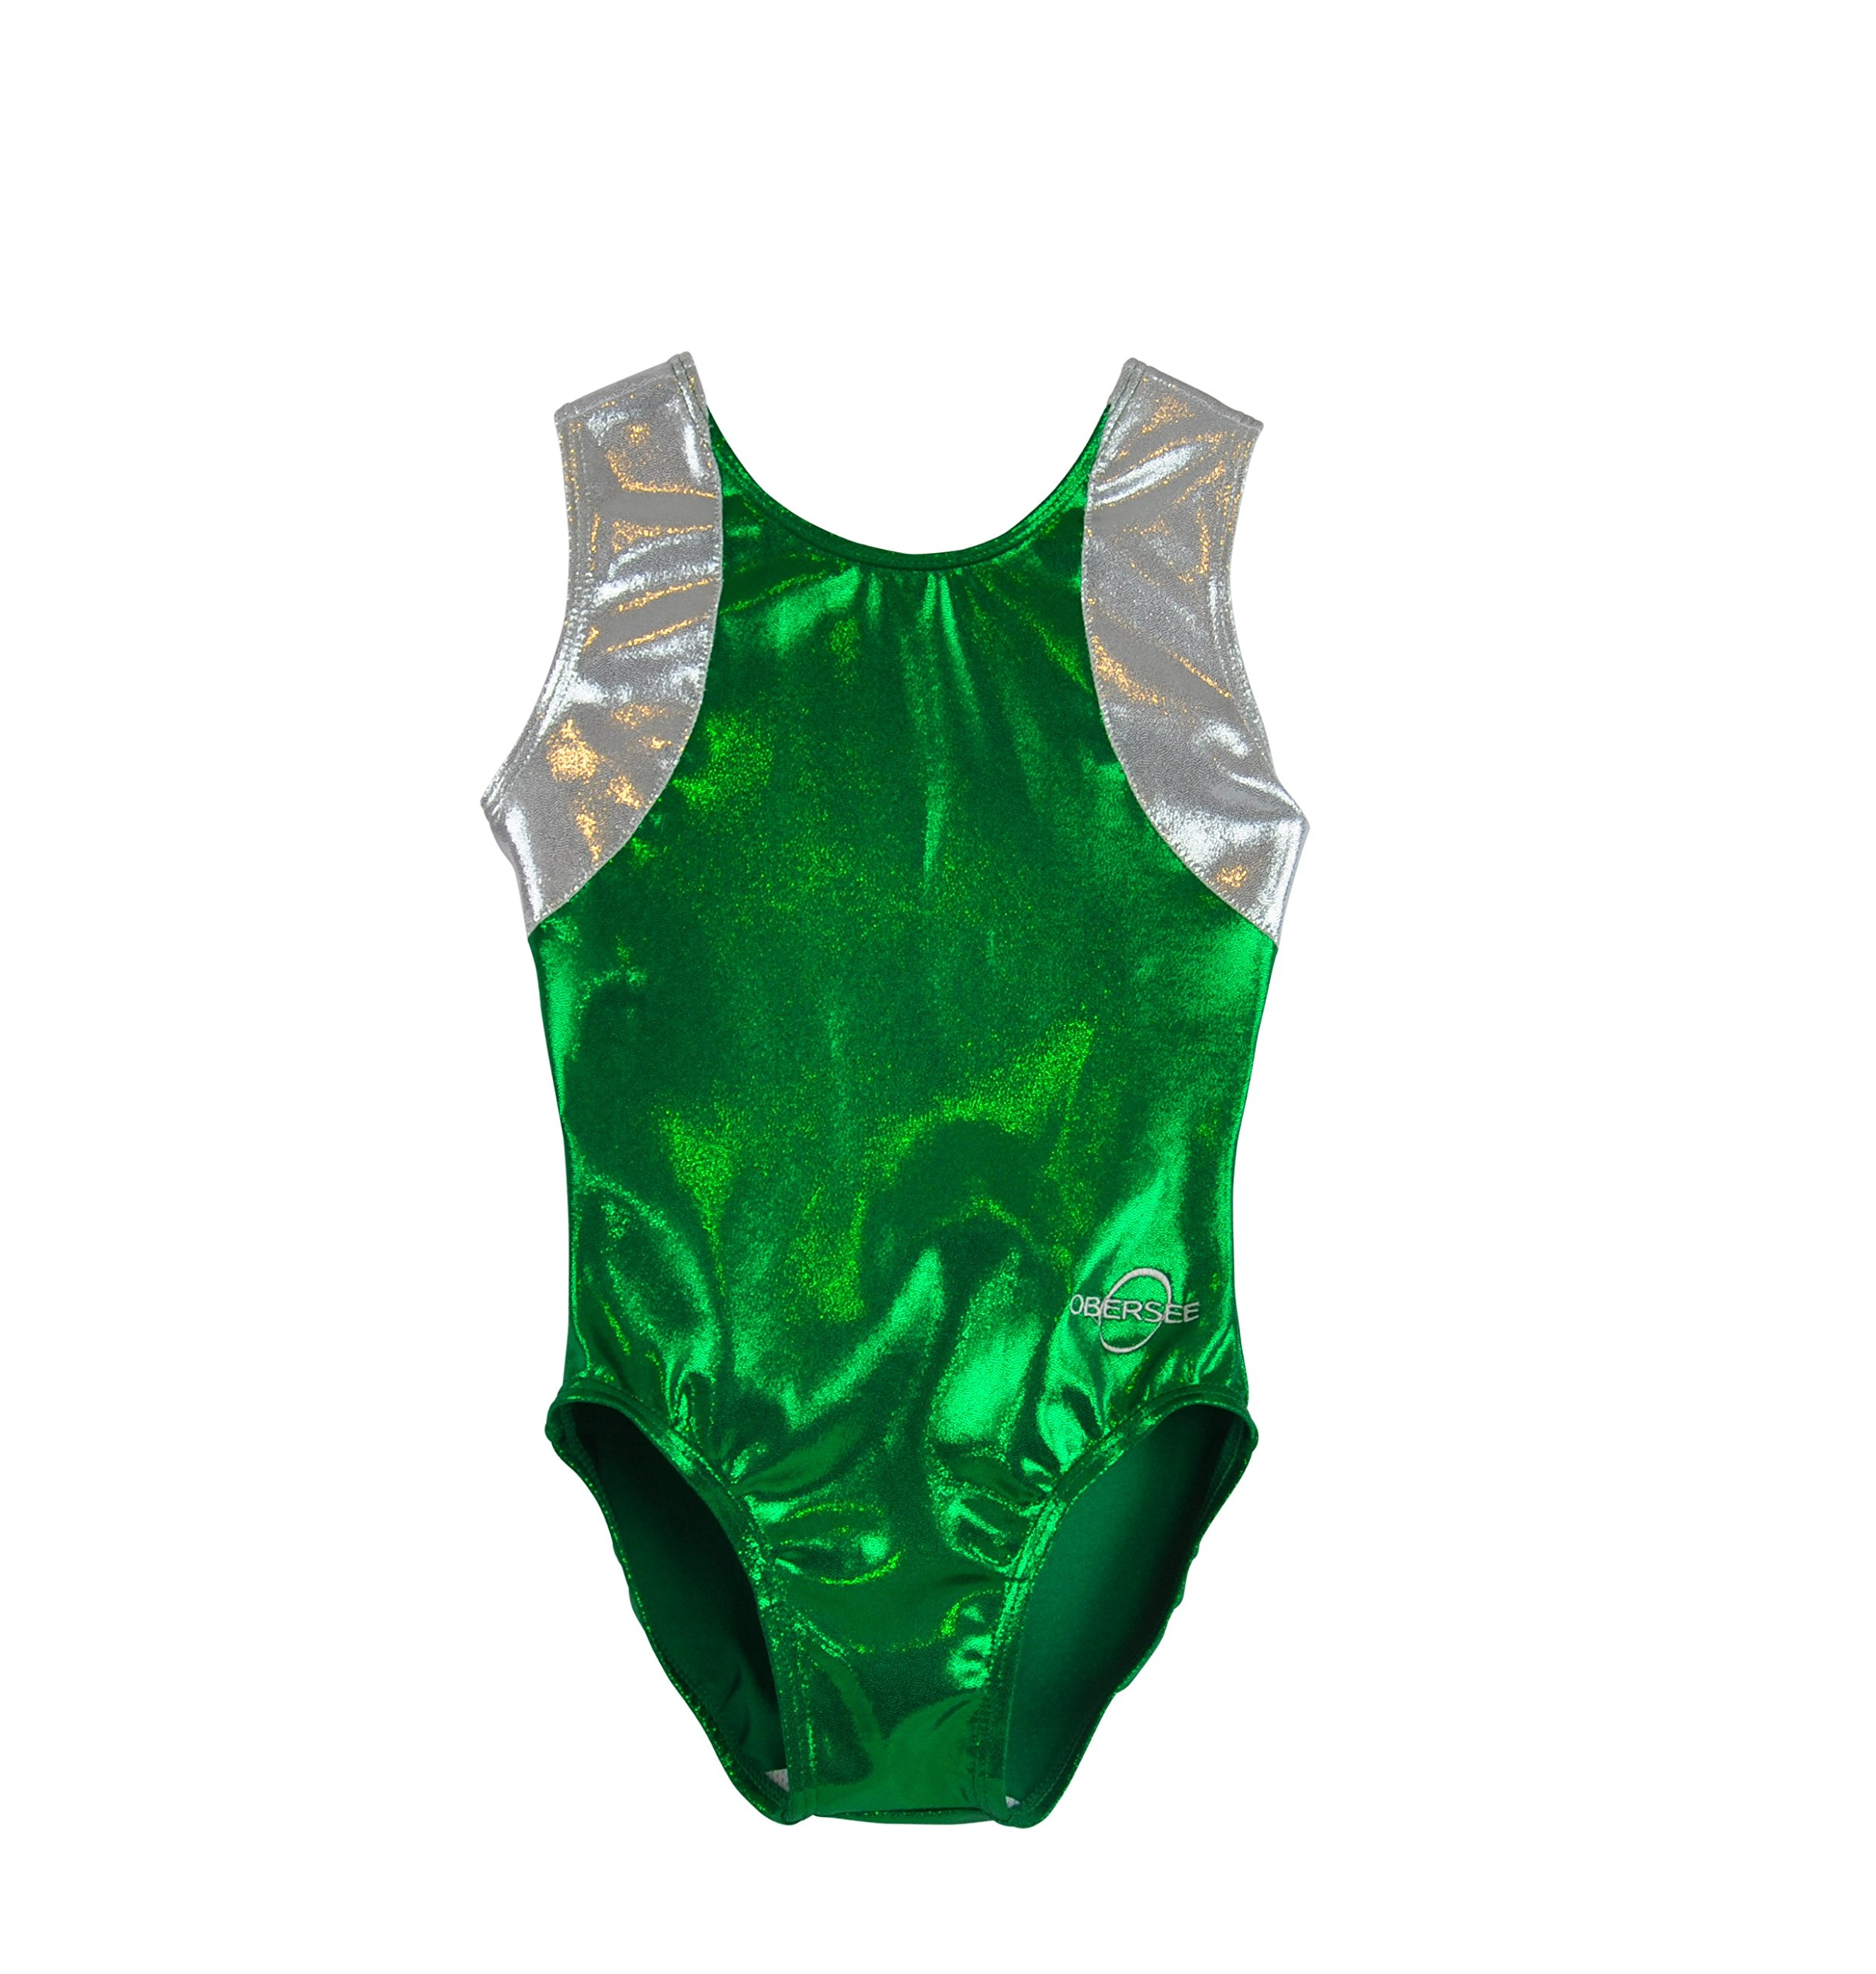 Obersee Kid's Gymnastics Leotard, Cross Back Green, cm by Obersee